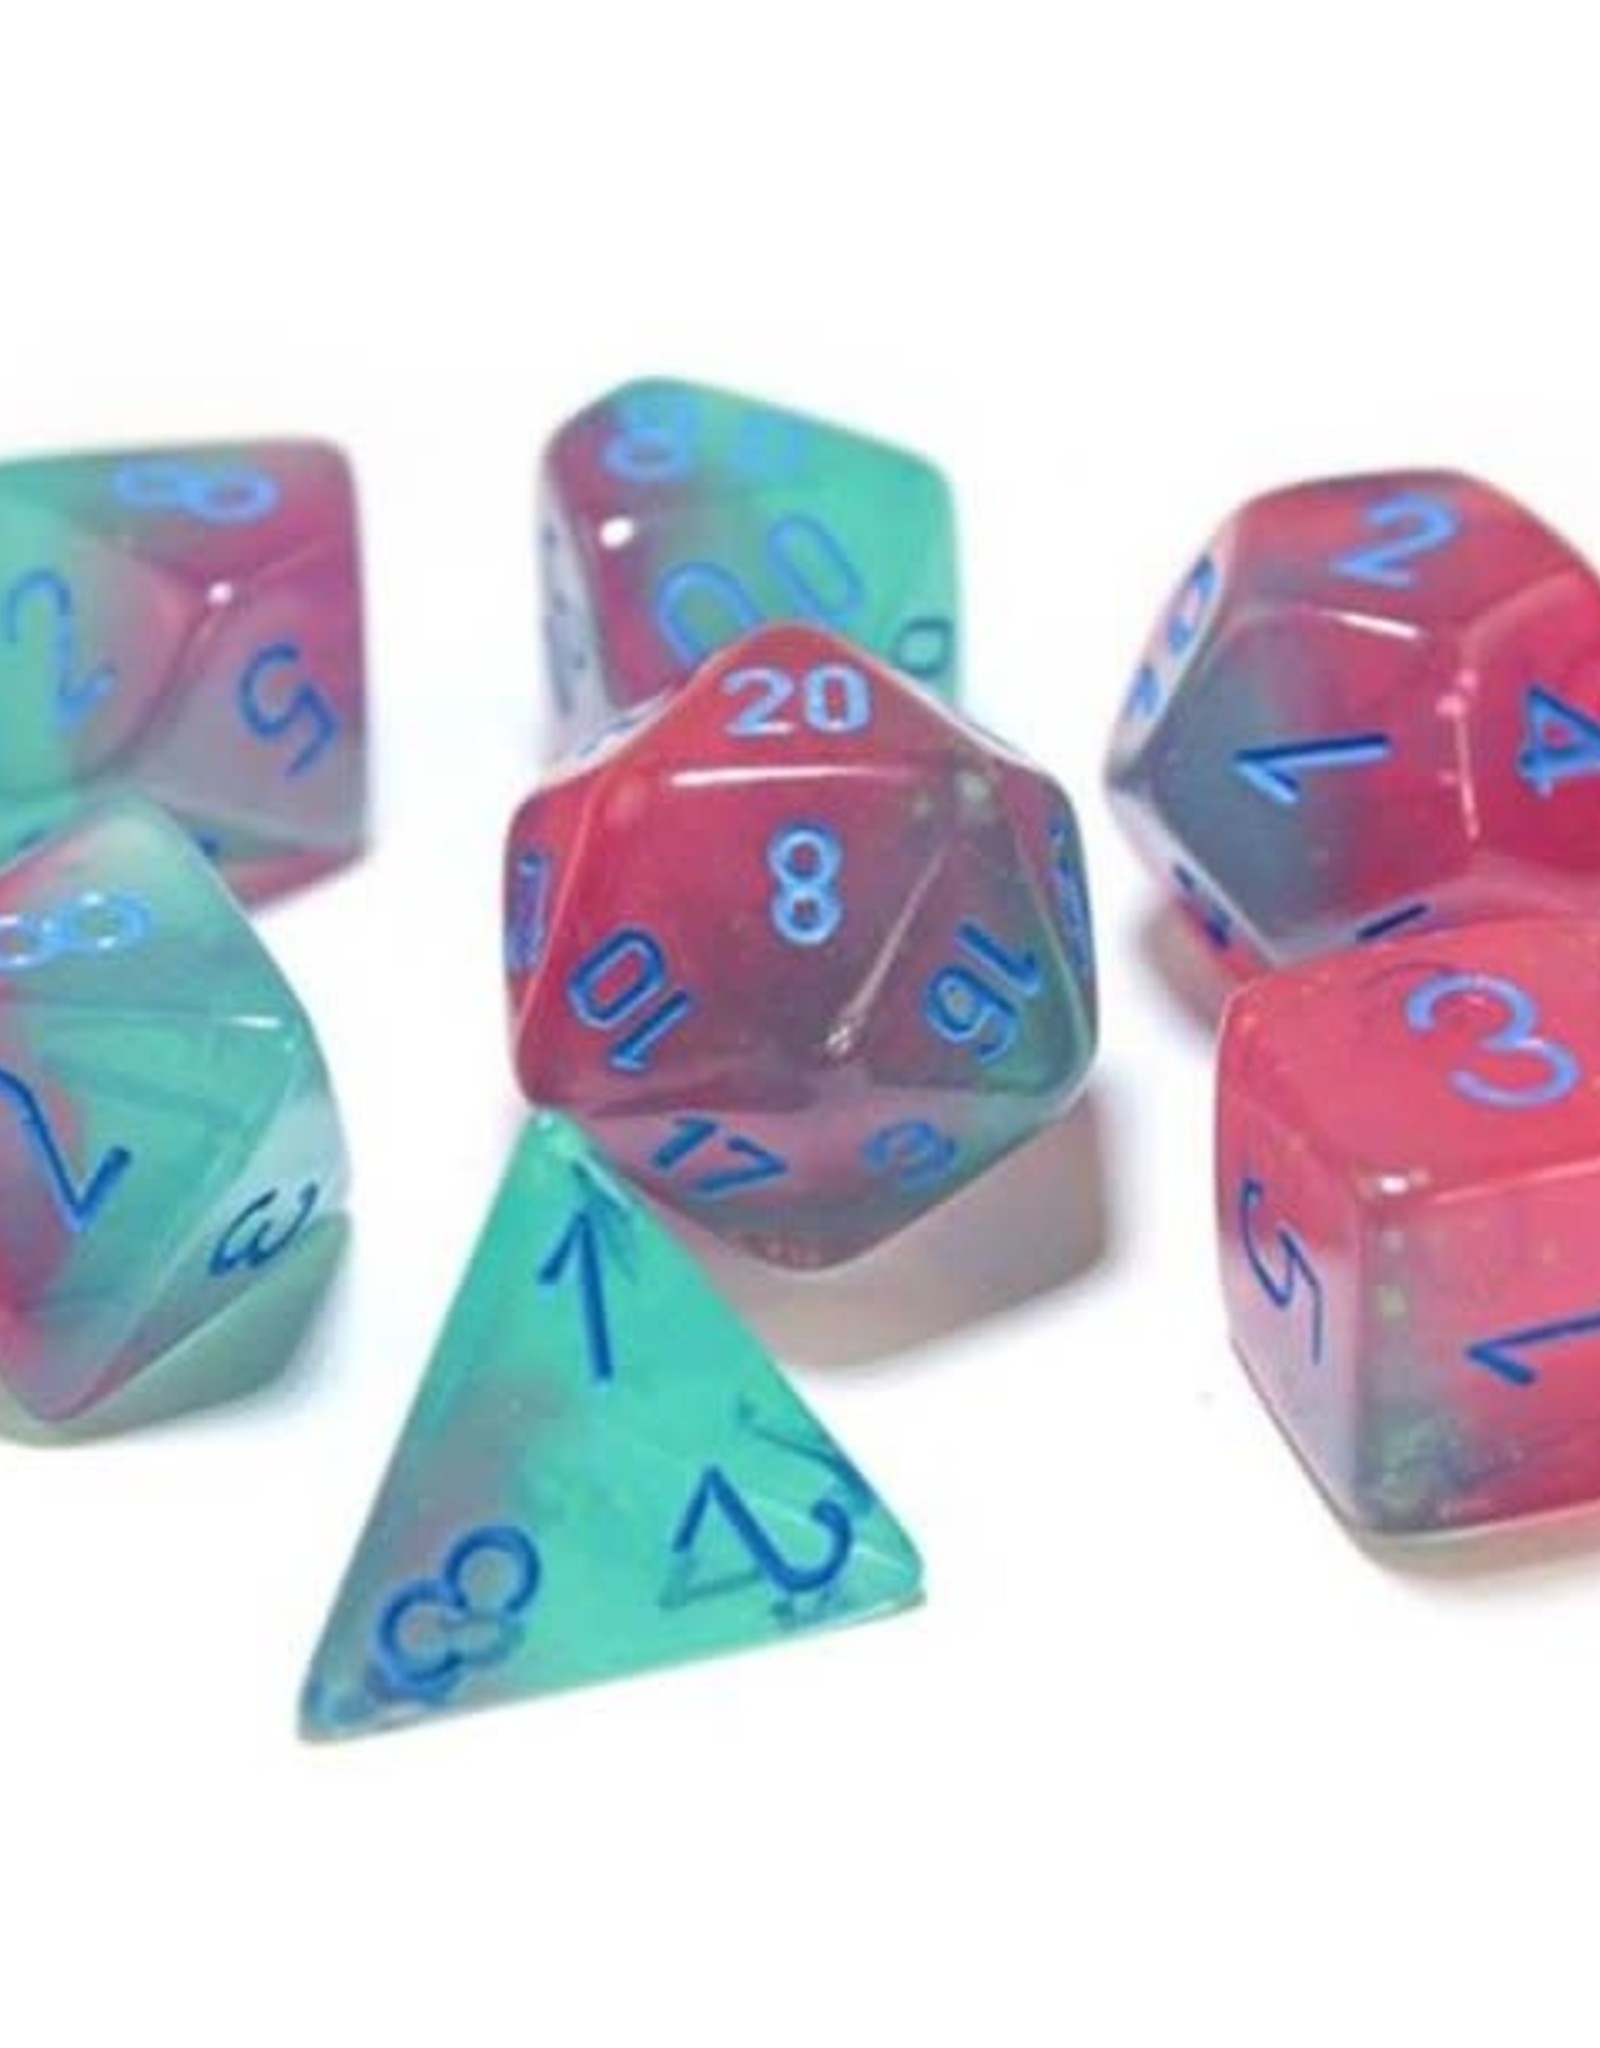 Chessex Chessex Manufacturing CHX30023 Cube Luminary Gemini Lab Dice - Green, Pink & Blue - Set of 7